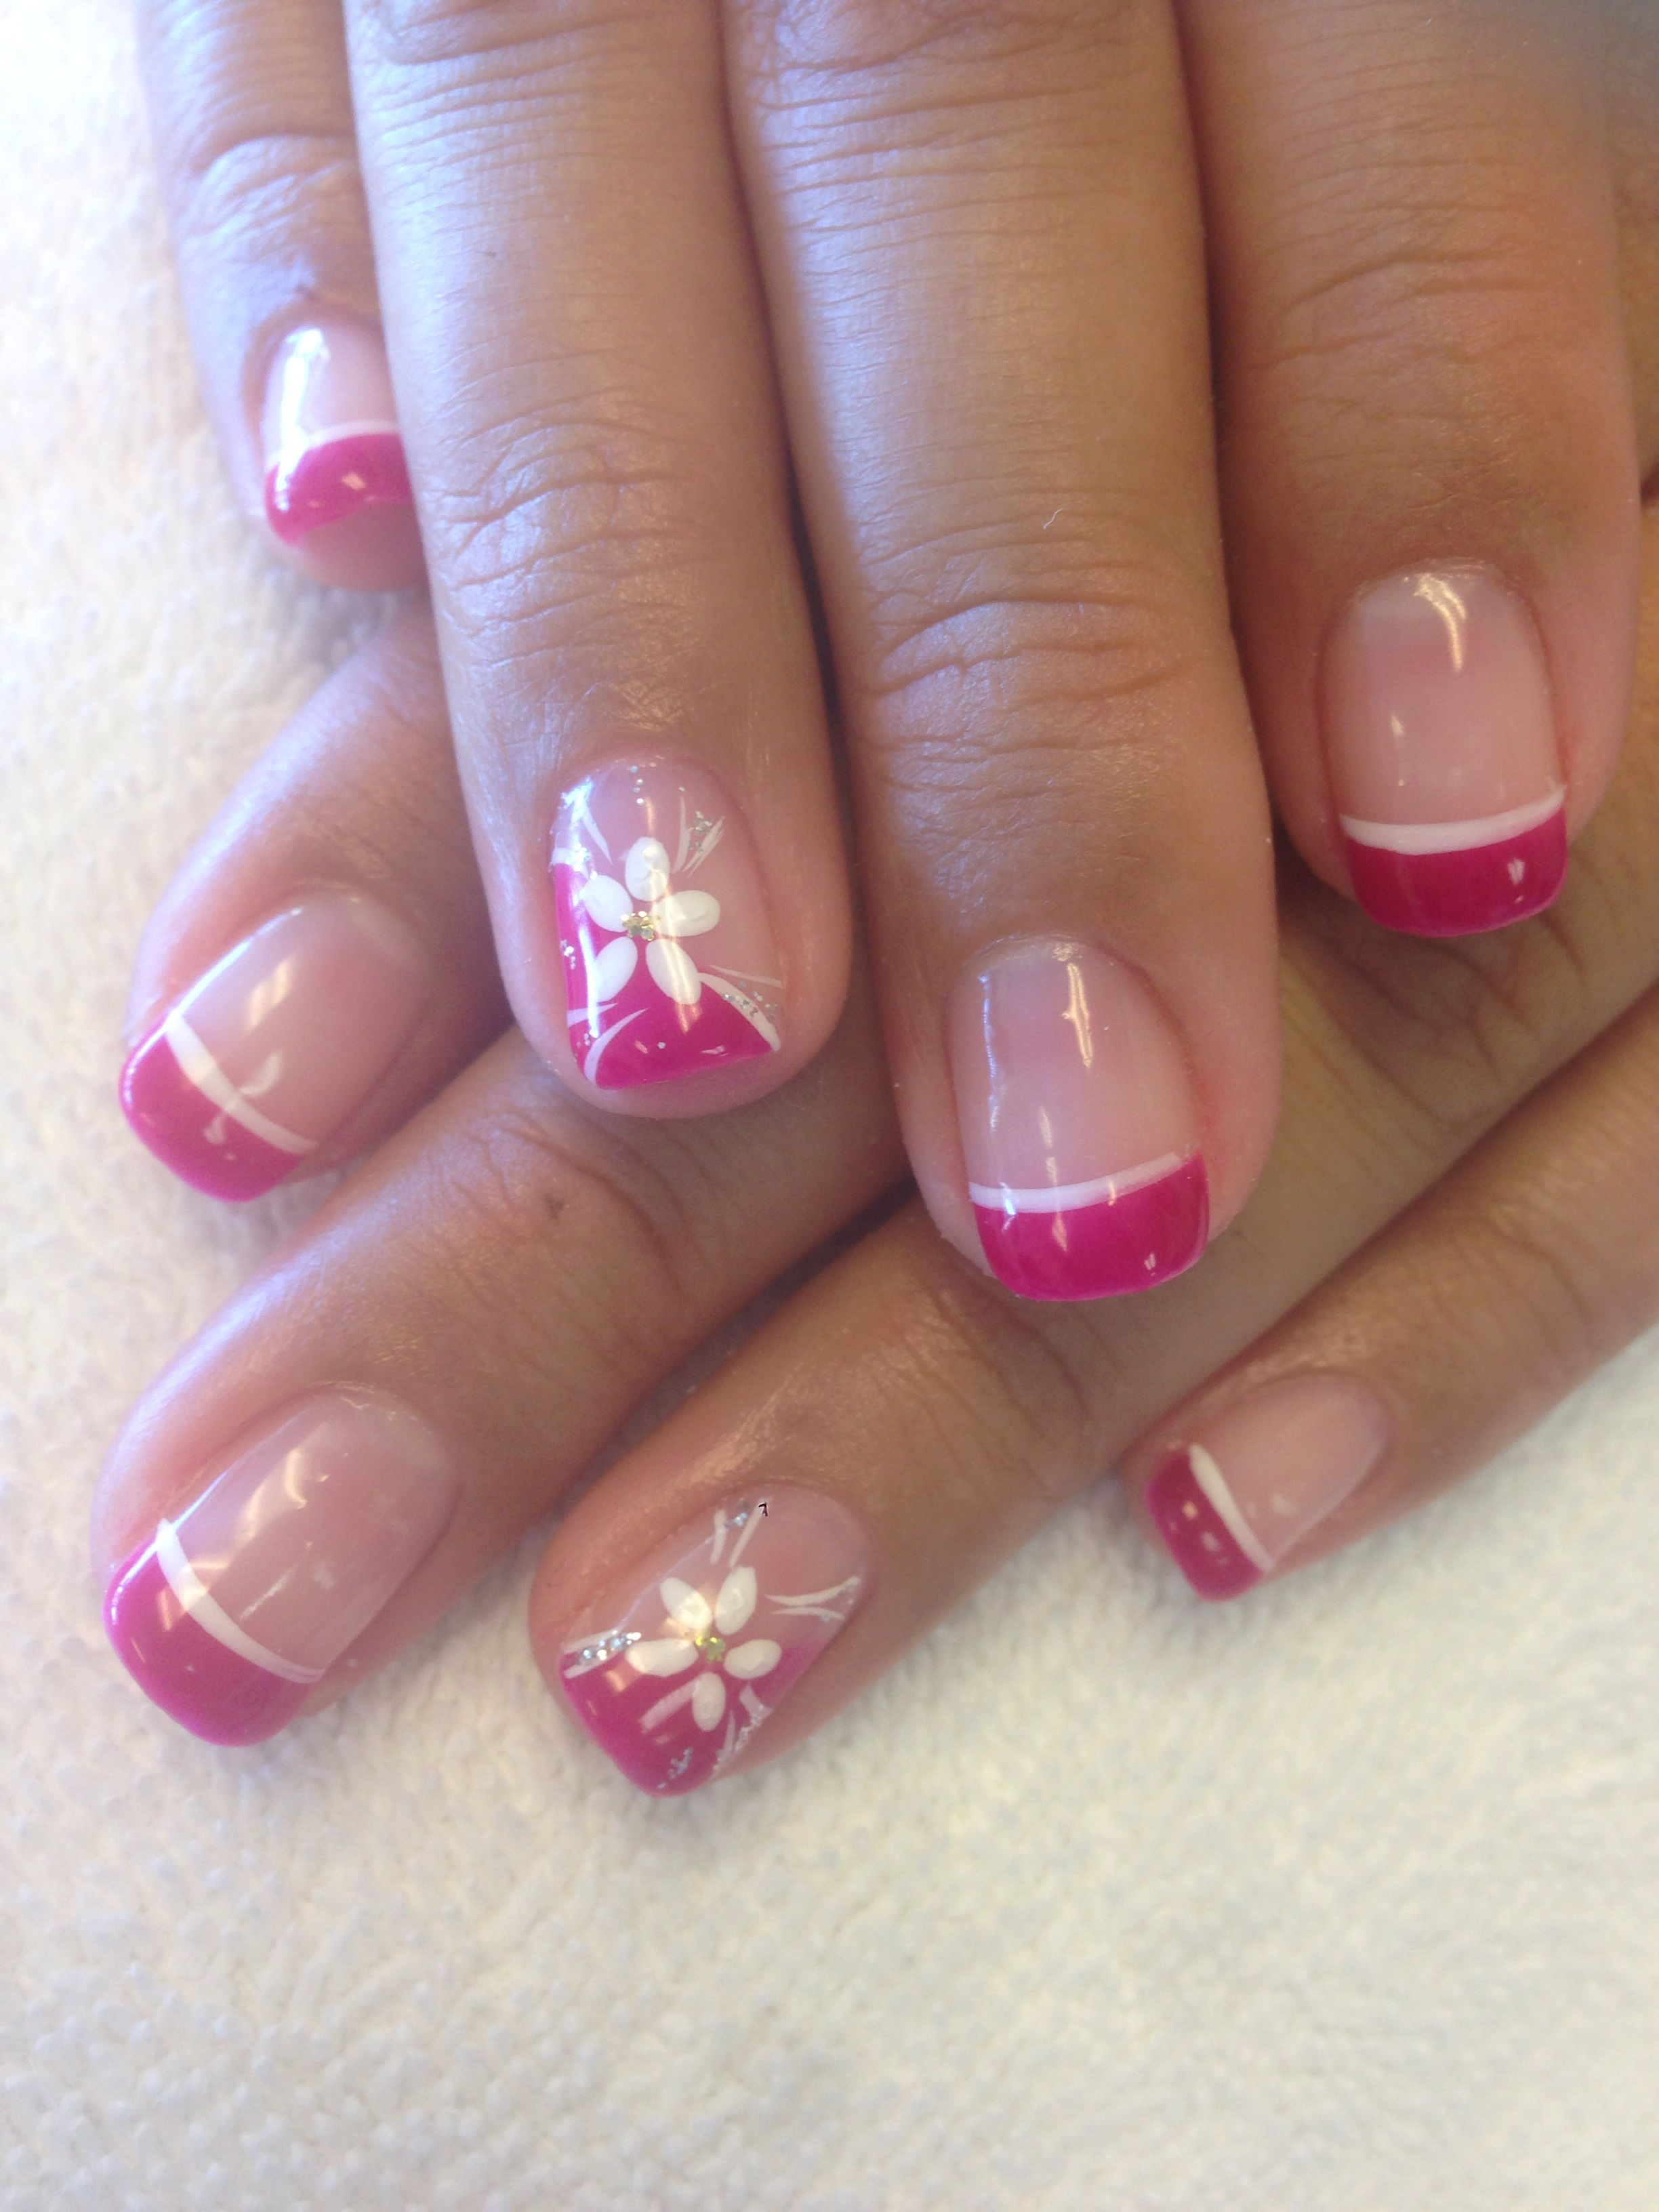 50 Nail Designs For Short Nails 2019 Gel French Manicure Gel Nail Art Designs Gel Nails French